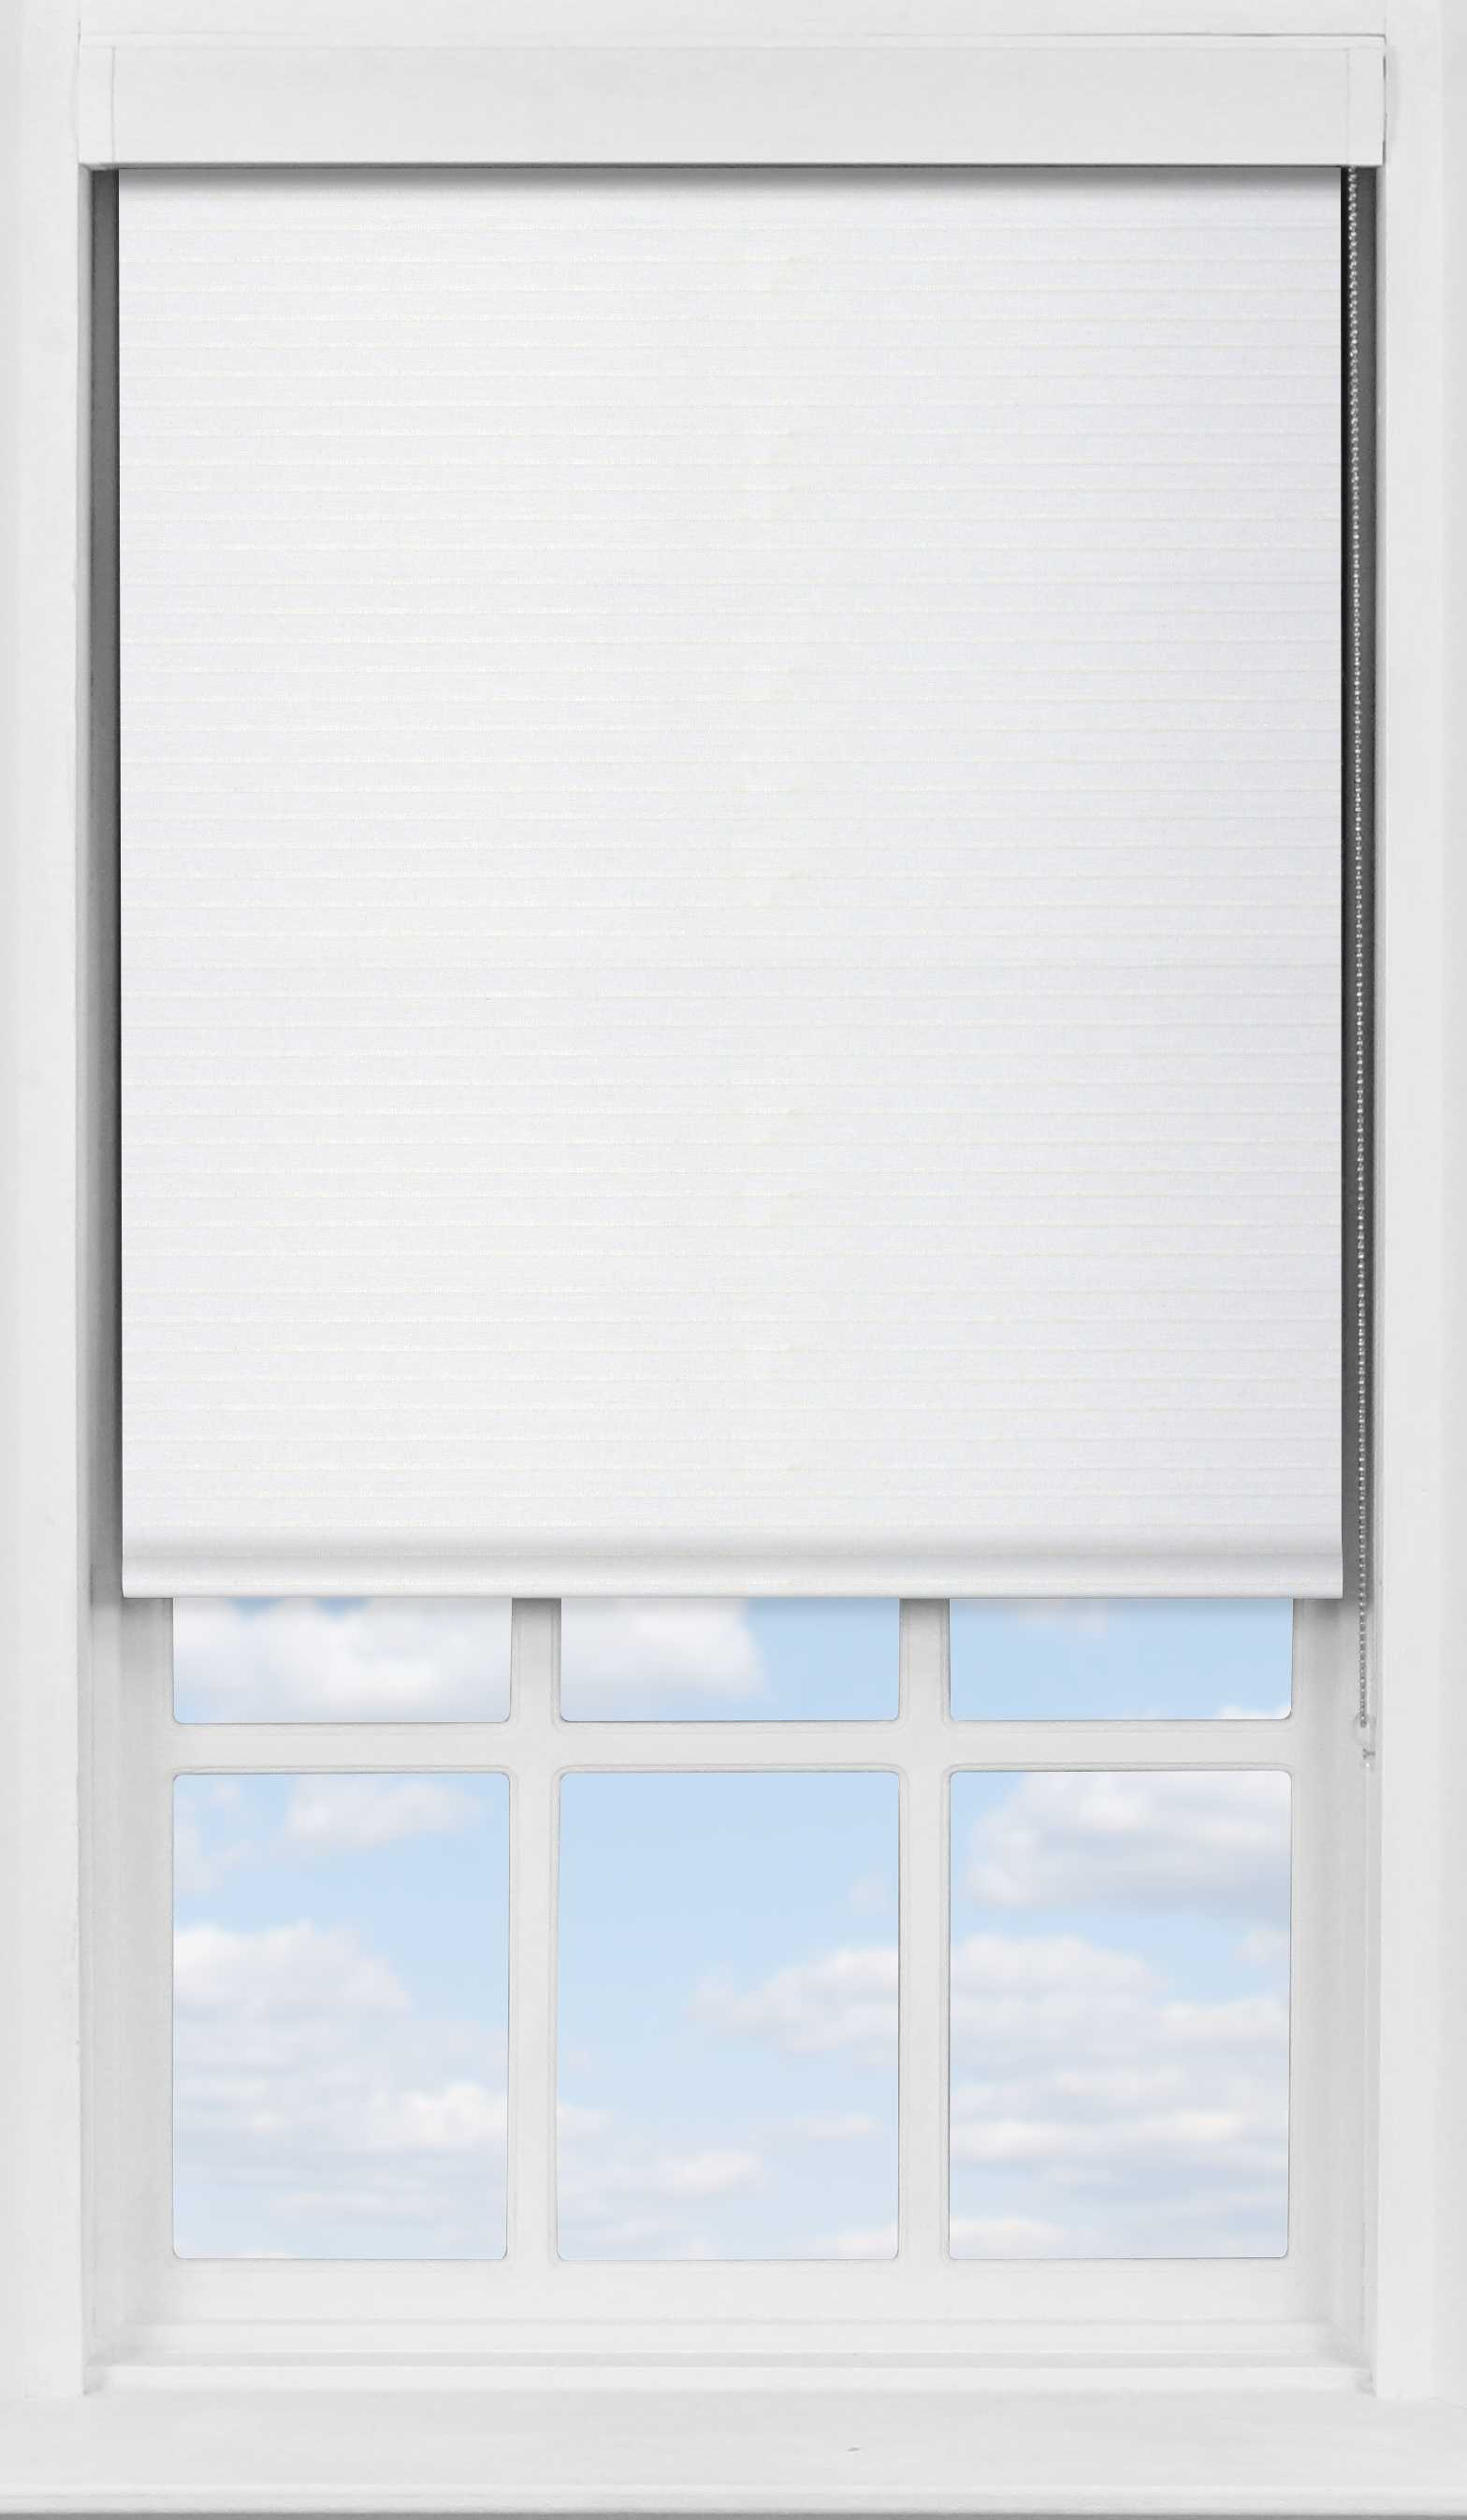 Premium Roller Blind in Seafoam White Translucent and Transparent Mix